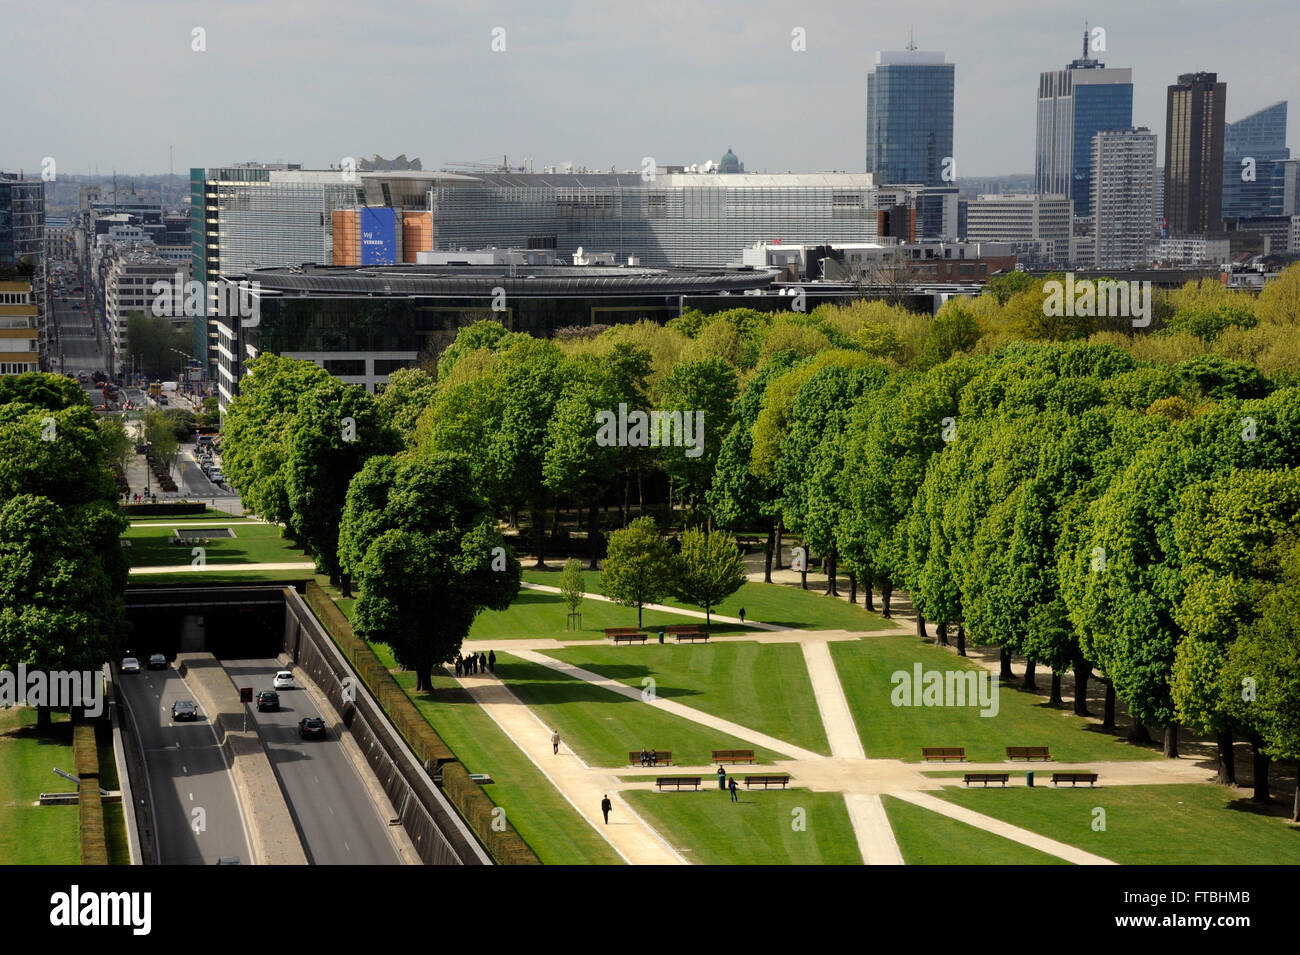 Park of the Fiftieth Anniversary and European Quarter,Brussels,Belgium - Stock Image